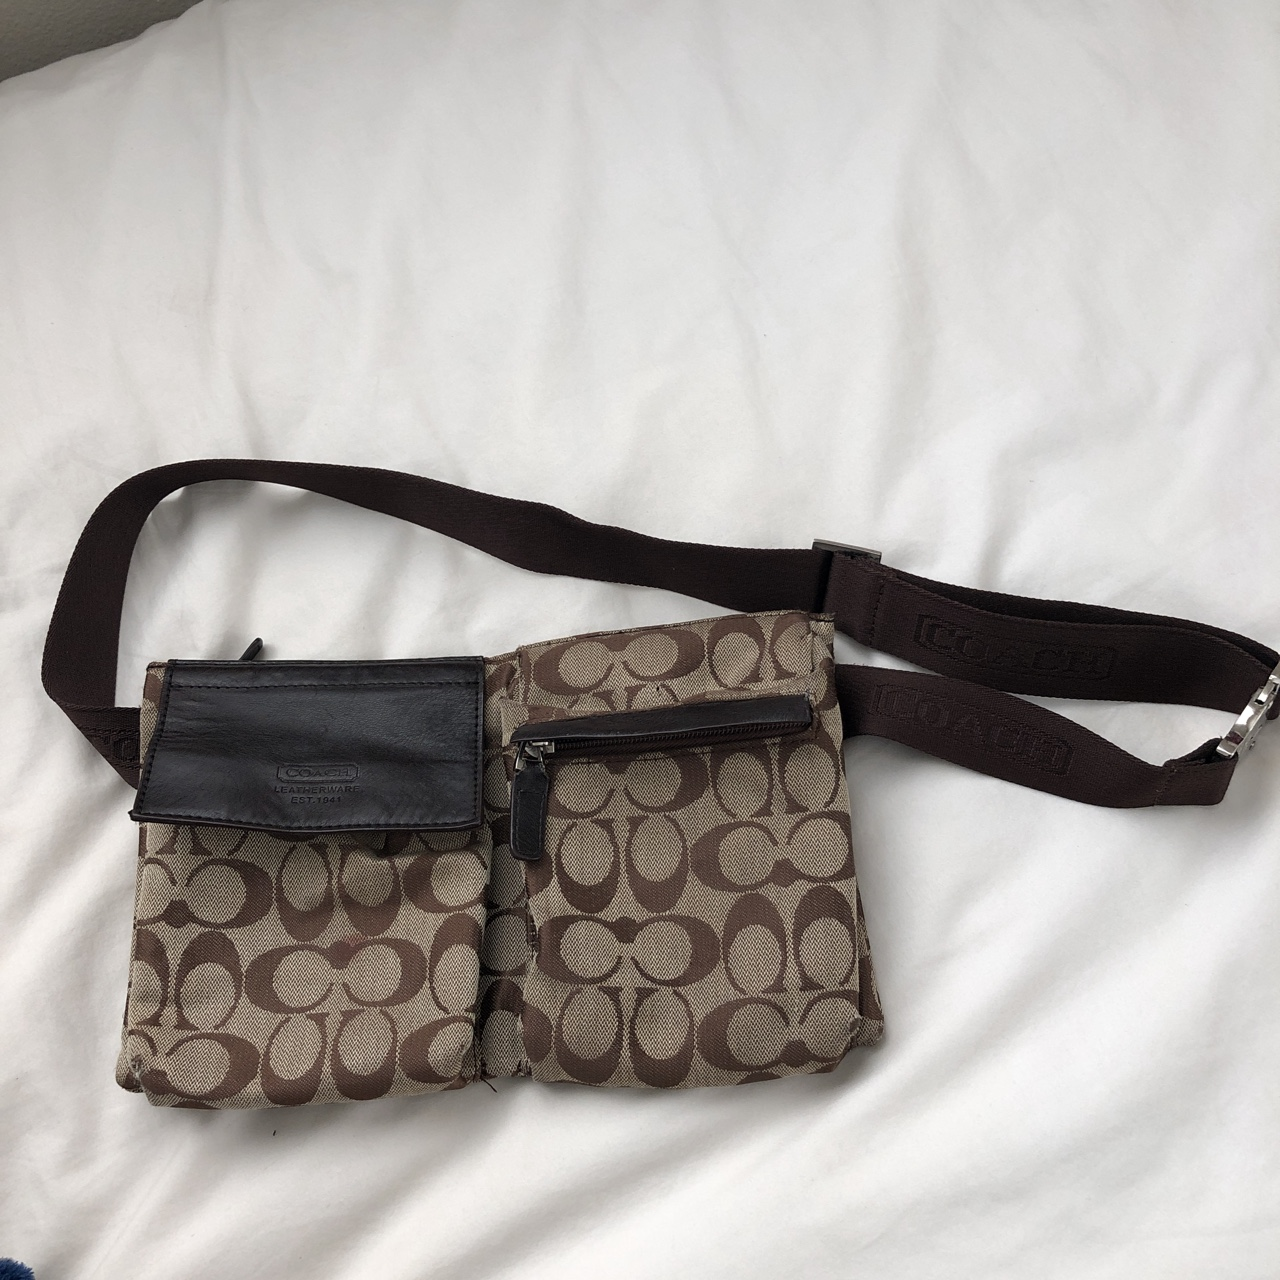 9ed9852dc3a Coach Fanny pack Good condition! #coach #fanny... - Depop